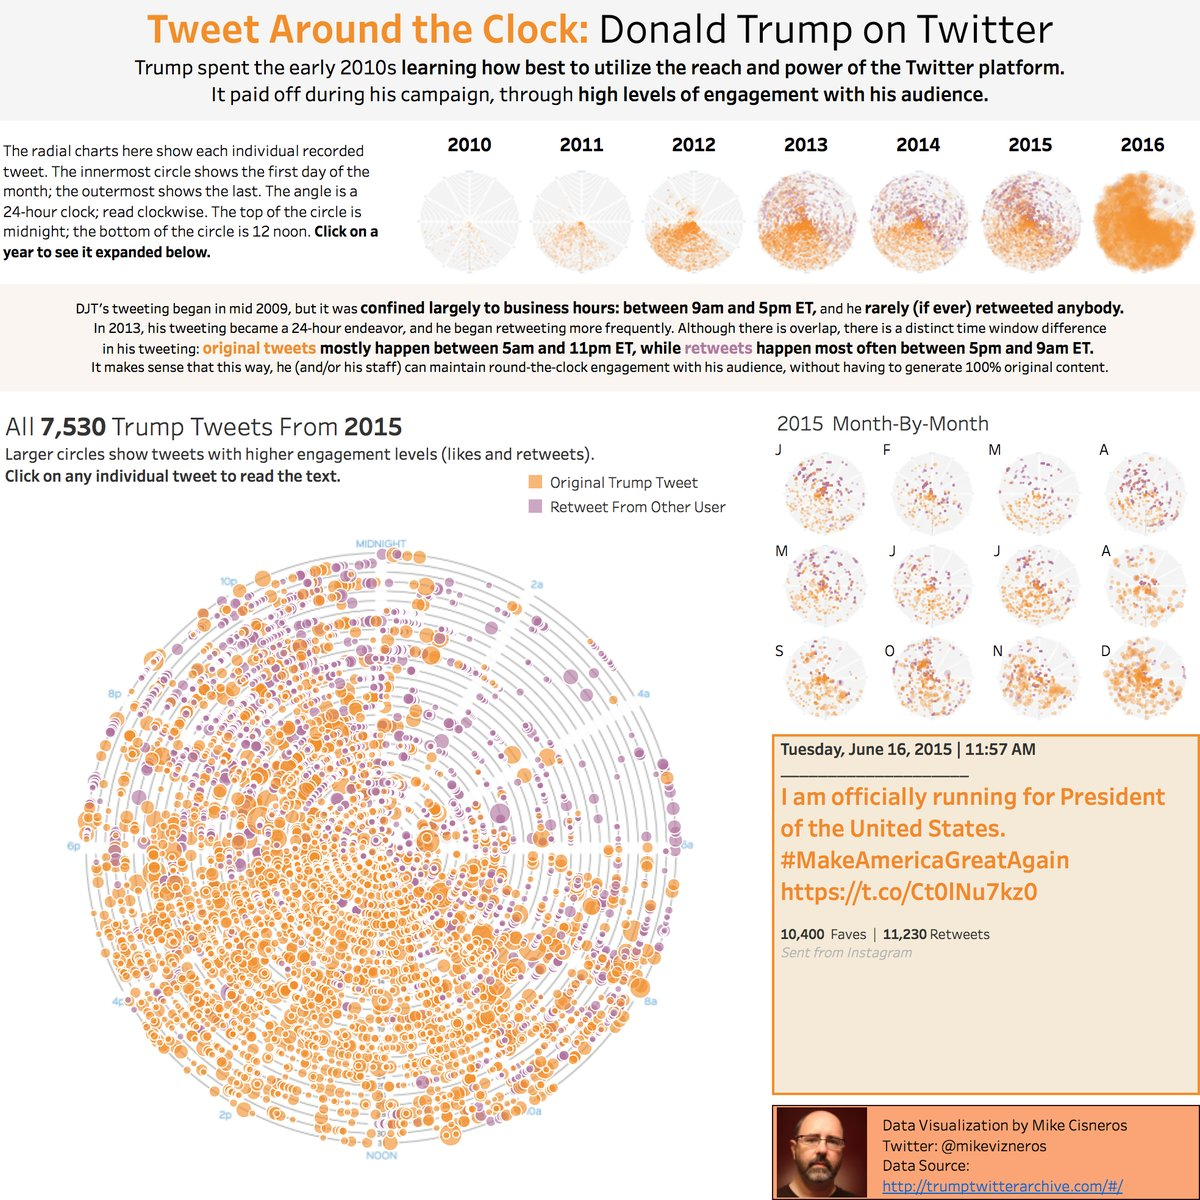 Week 3 – The 294 Accounts Donald Trump Retweeted During The Election